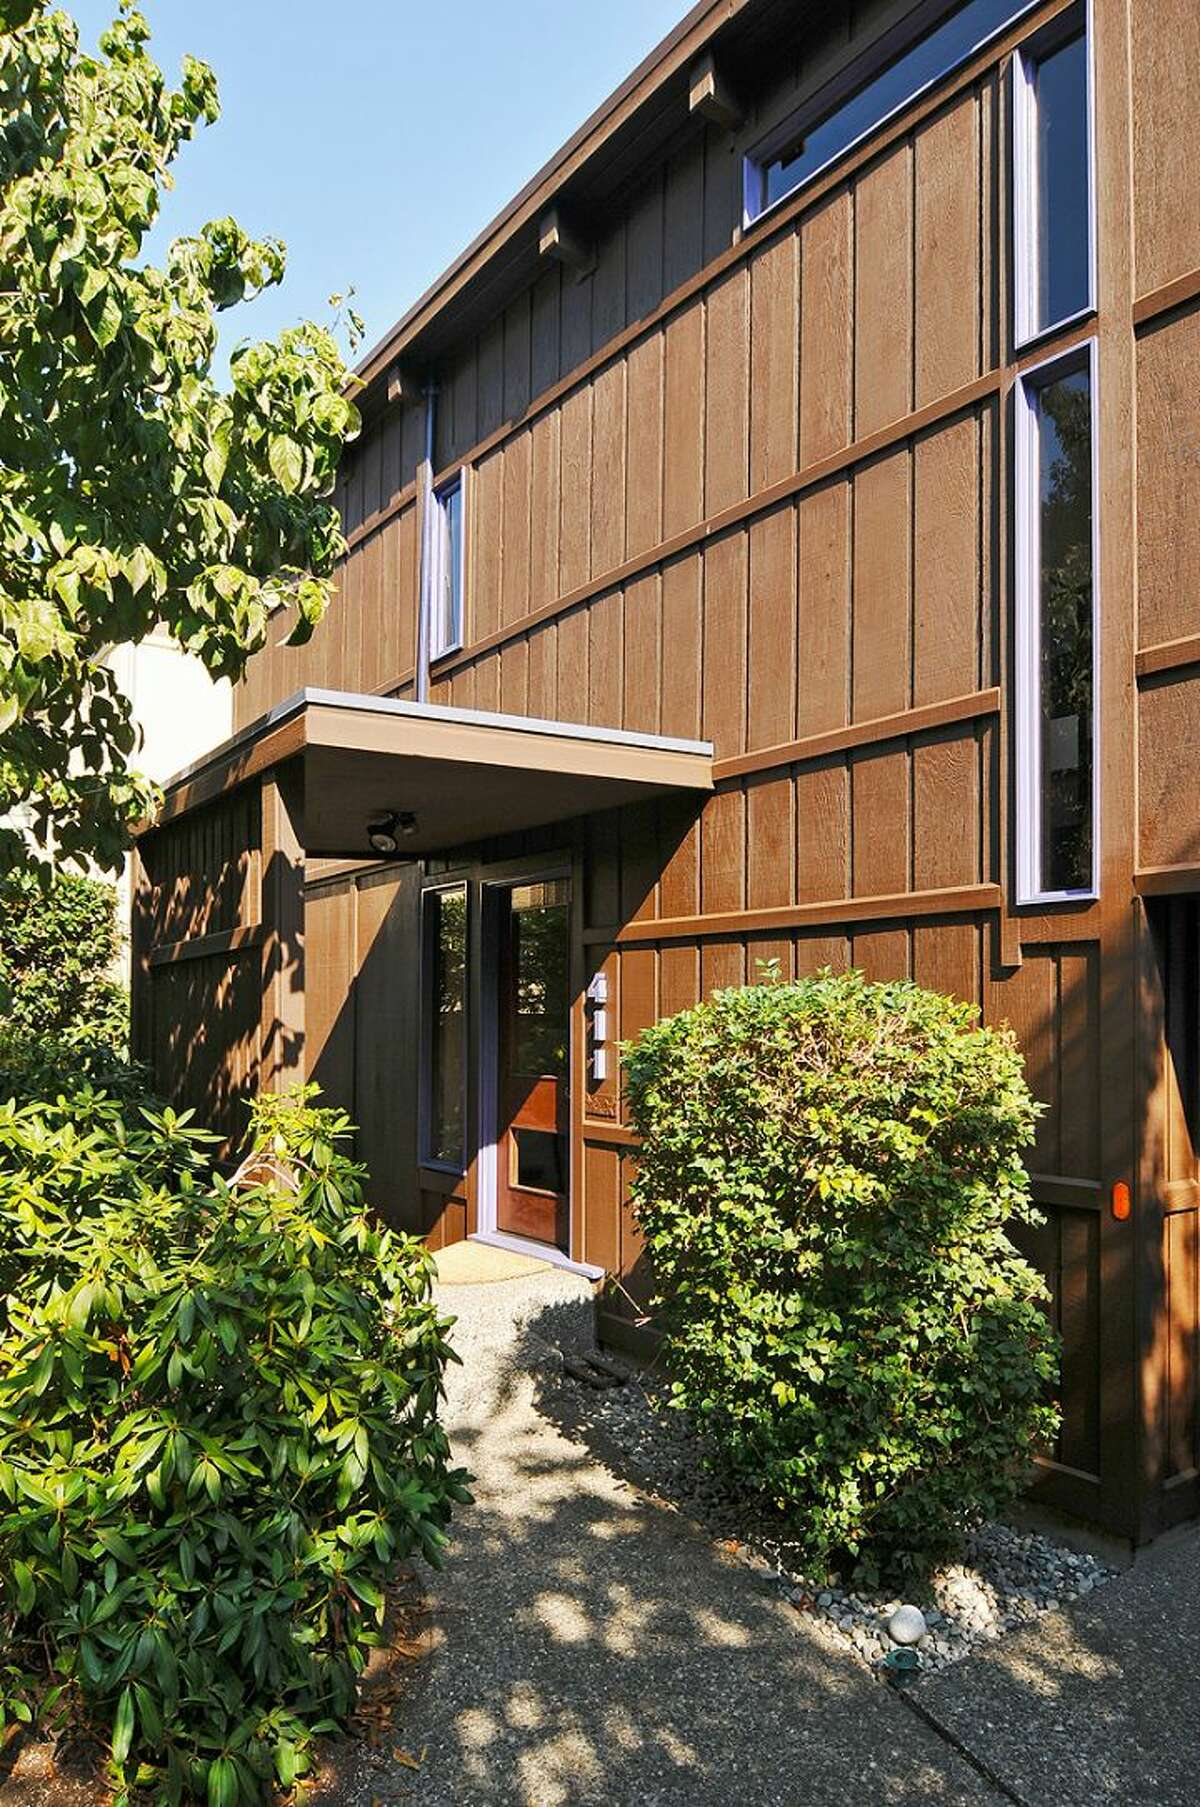 Front of 411 Erie Ave., in Leschi. The 2,440-square-foot house, built in 1970, has three bedrooms, two bathrooms, wood doors, moldings, stairways, ceilings and beams, walls of windows looking over Lake Washington, along with a view deck on a 6,600-square-foot lot. It's listed for $850,000.